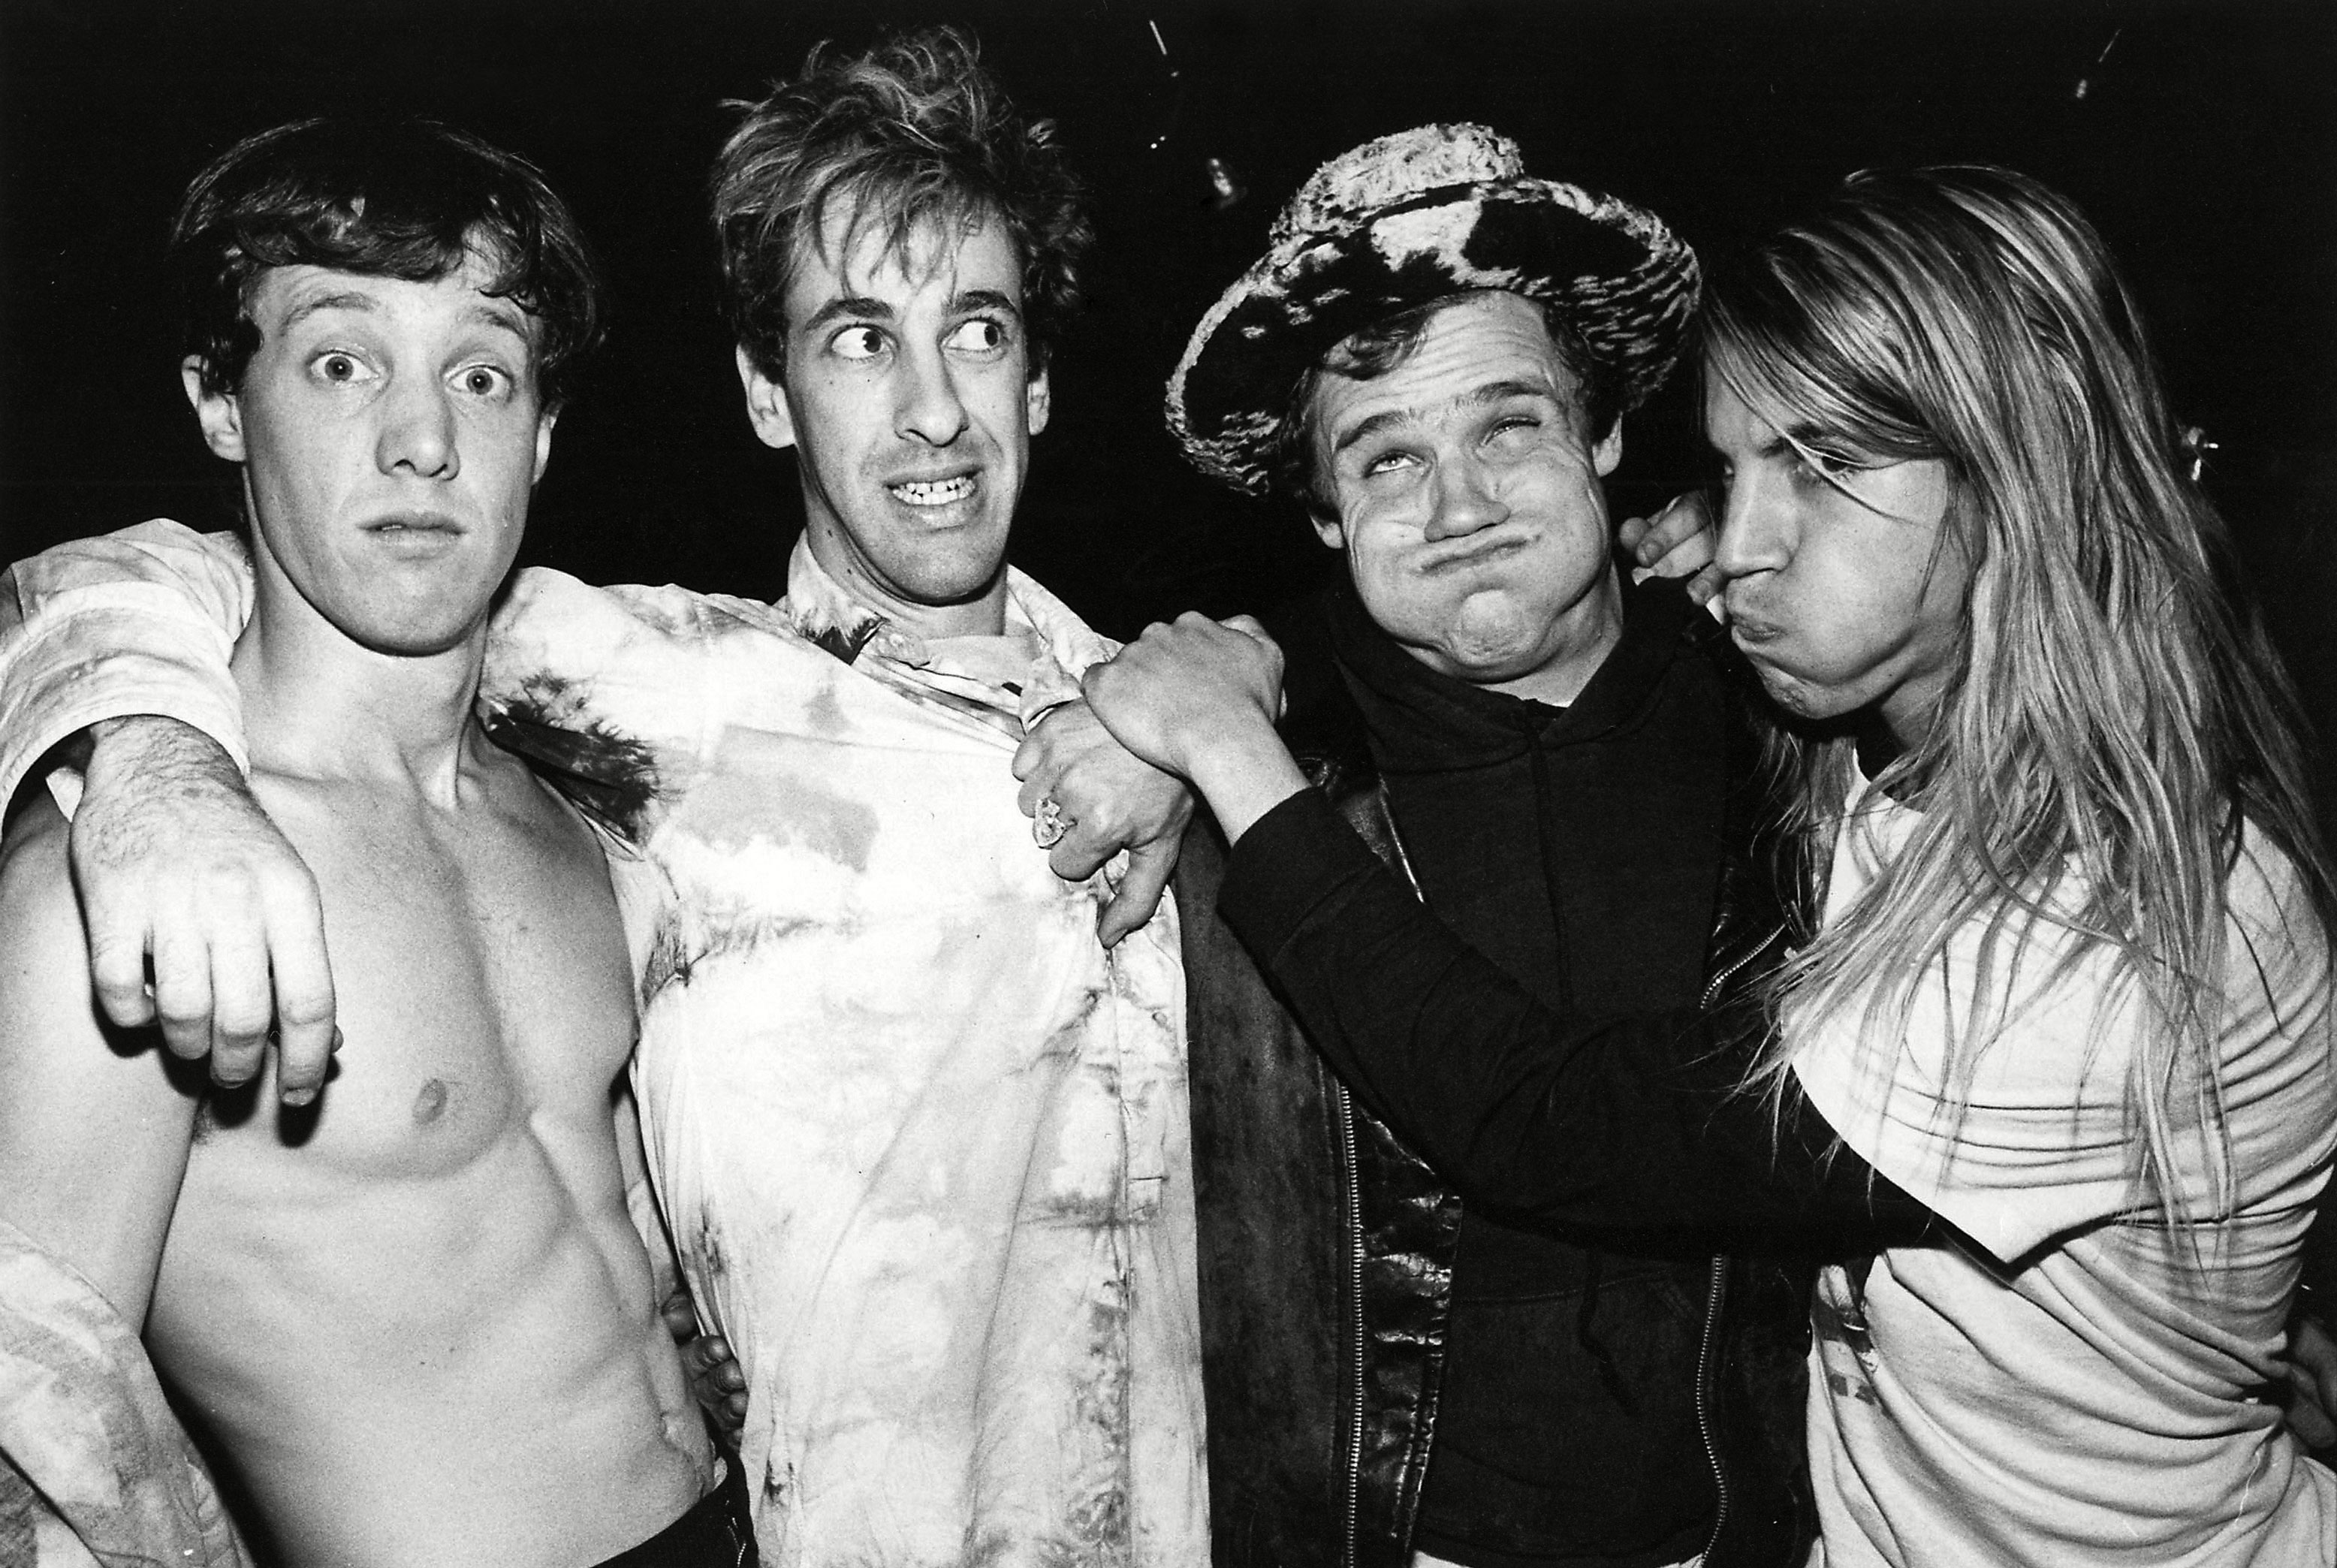 Red hot Chili Peppers in 1986